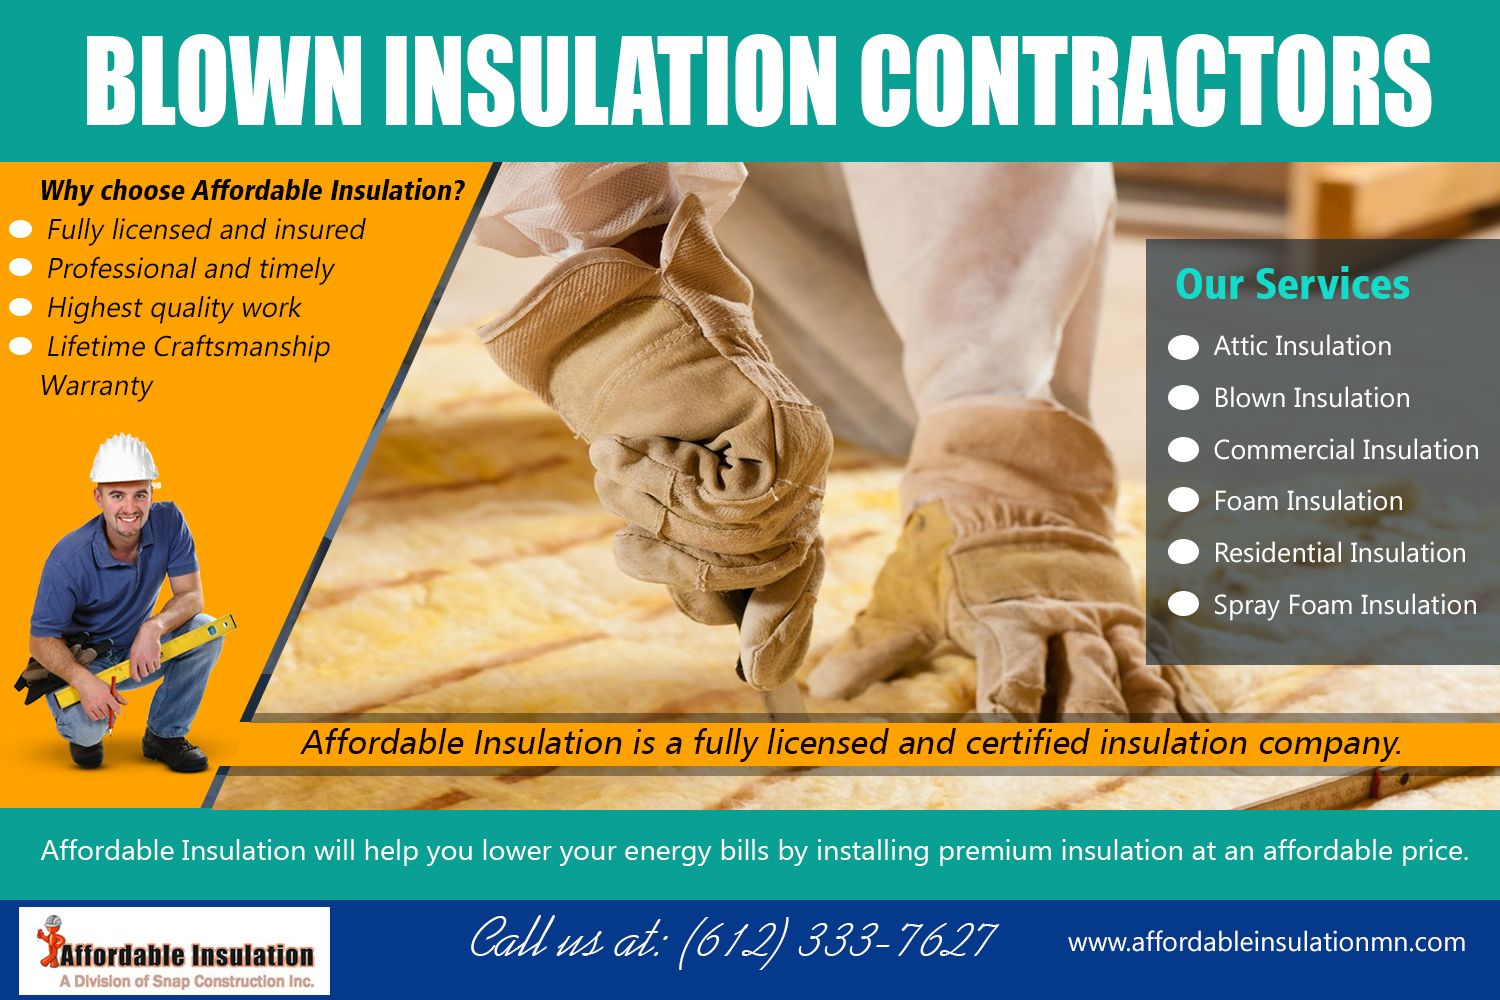 Insulation contractors can maximize a homeowner's